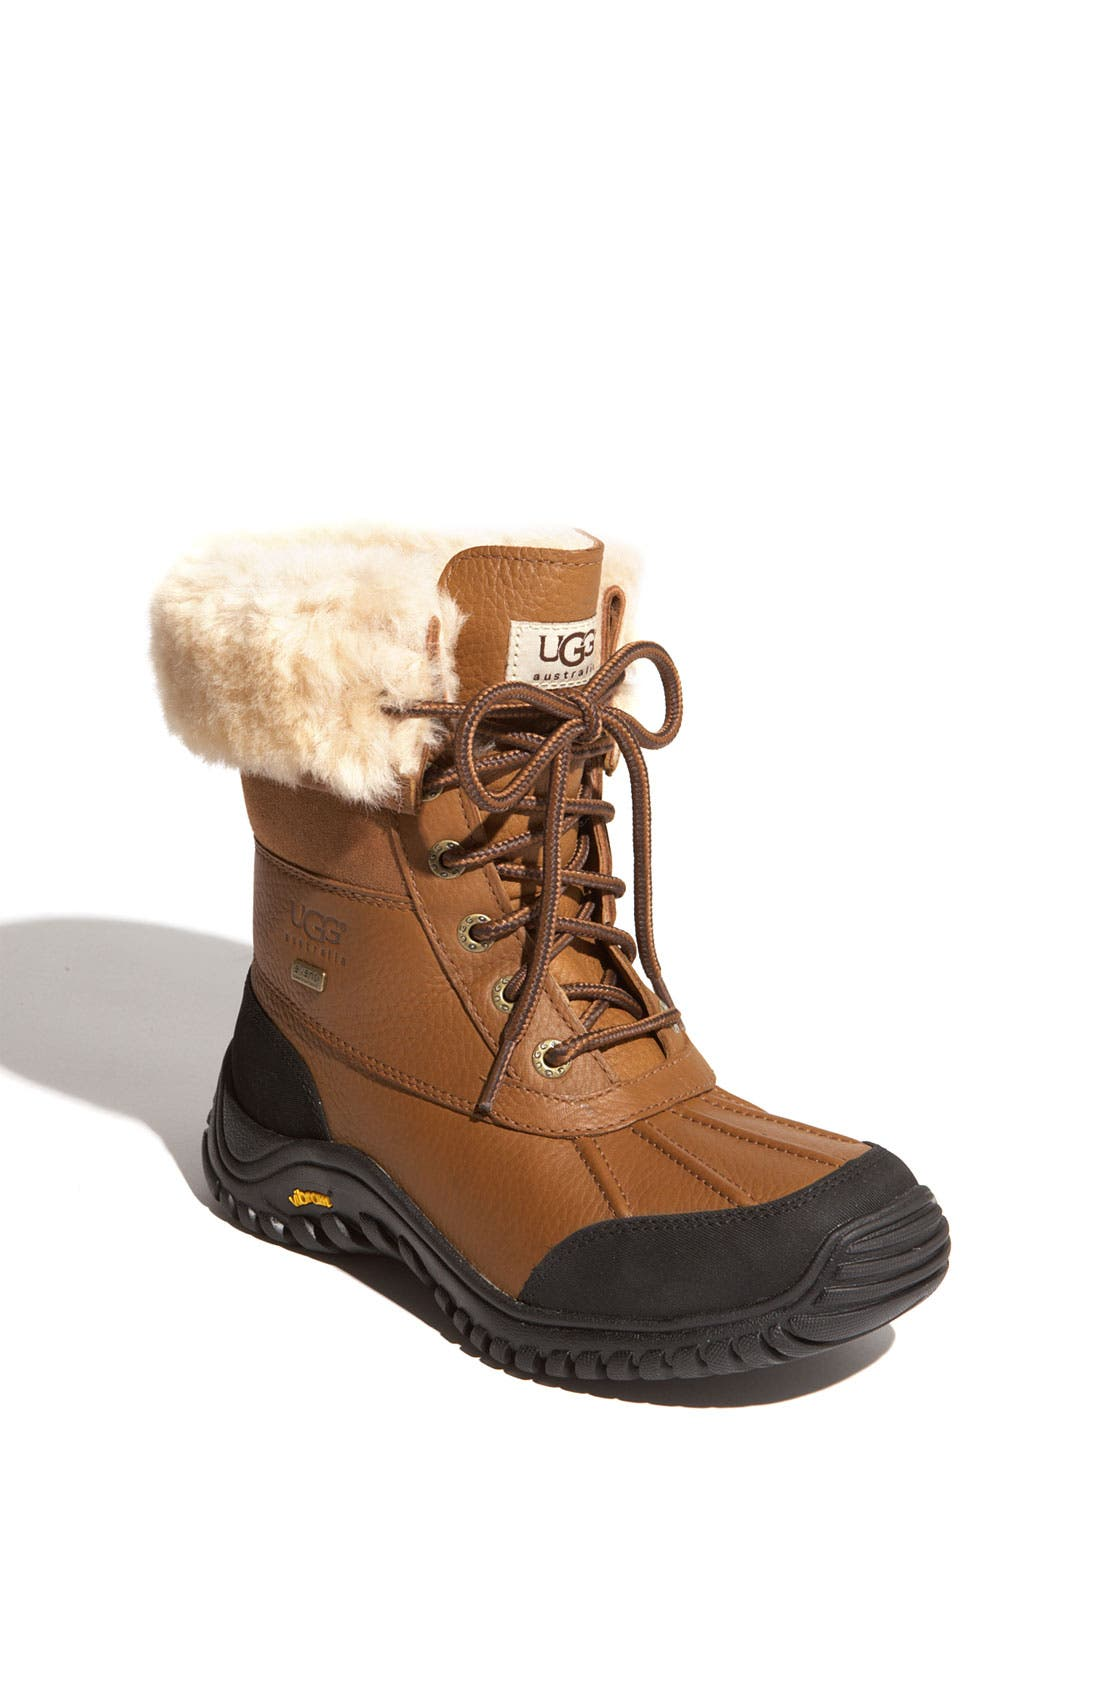 Main Image - UGG® Adirondack II Waterproof Boot (Women)